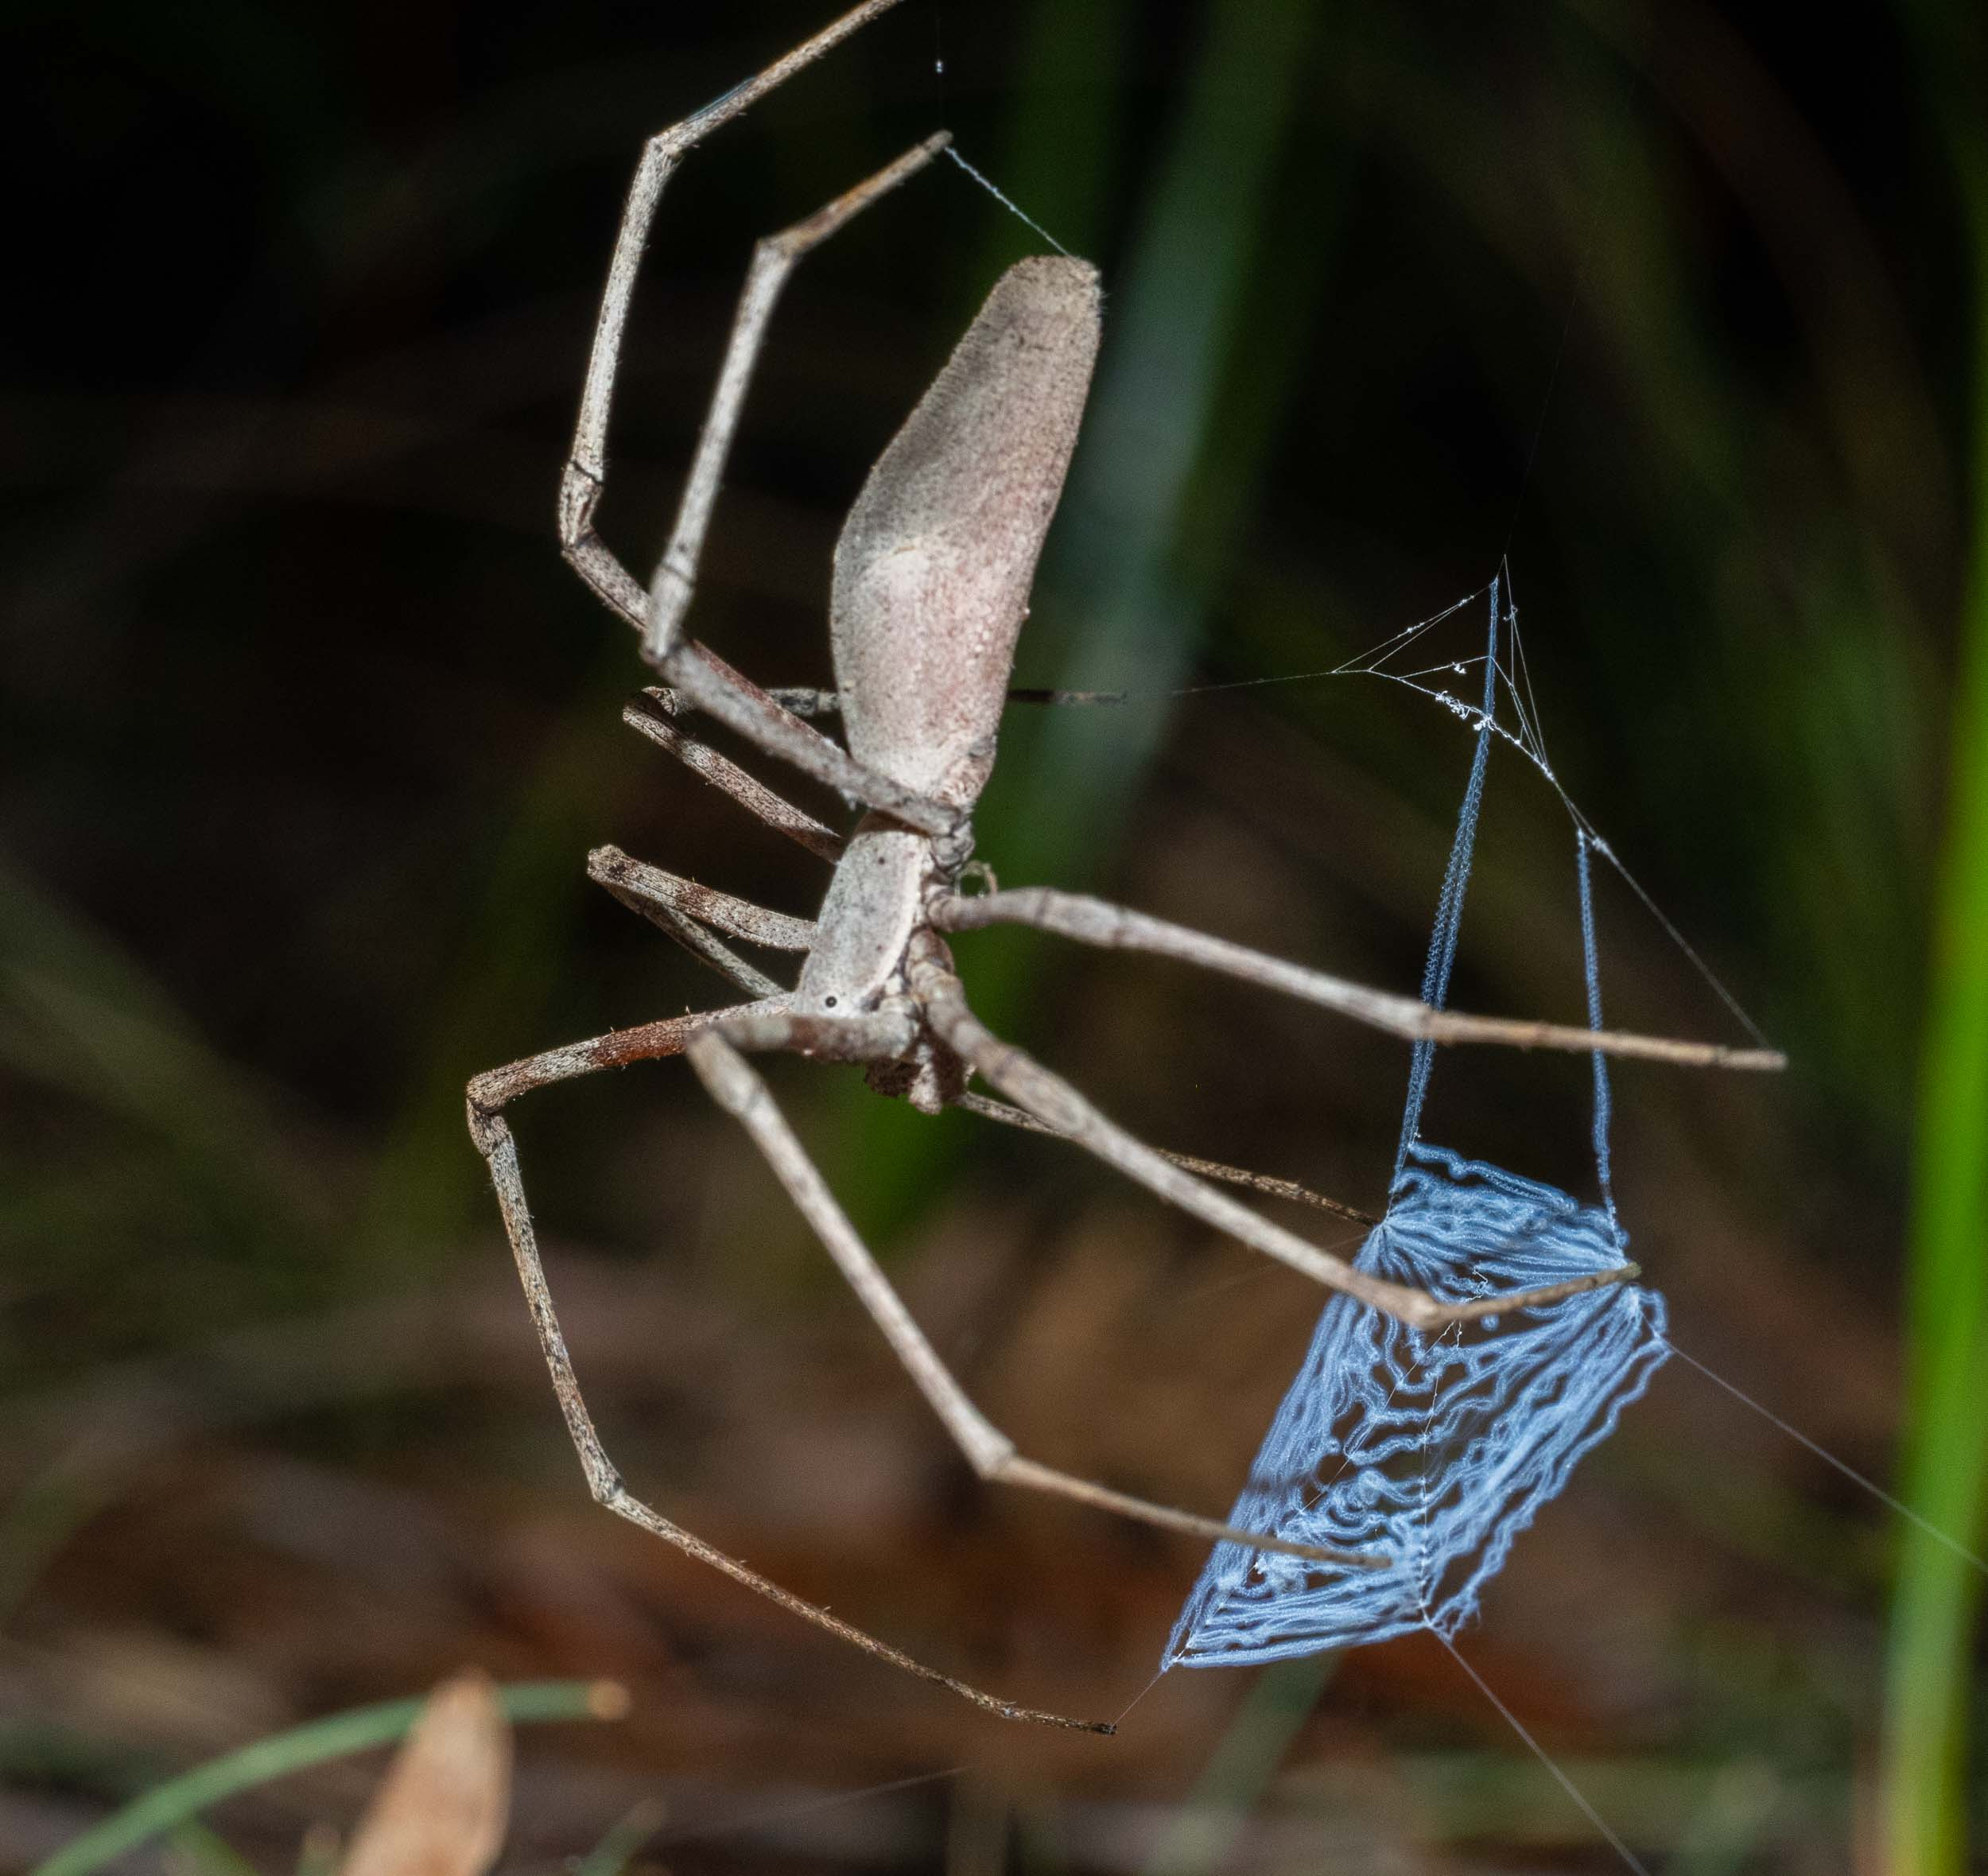 I've focussed on the net in this shot. Note the special coiled silk - called cribellate silk - which allows the net to be expanded to cover the prey insect.